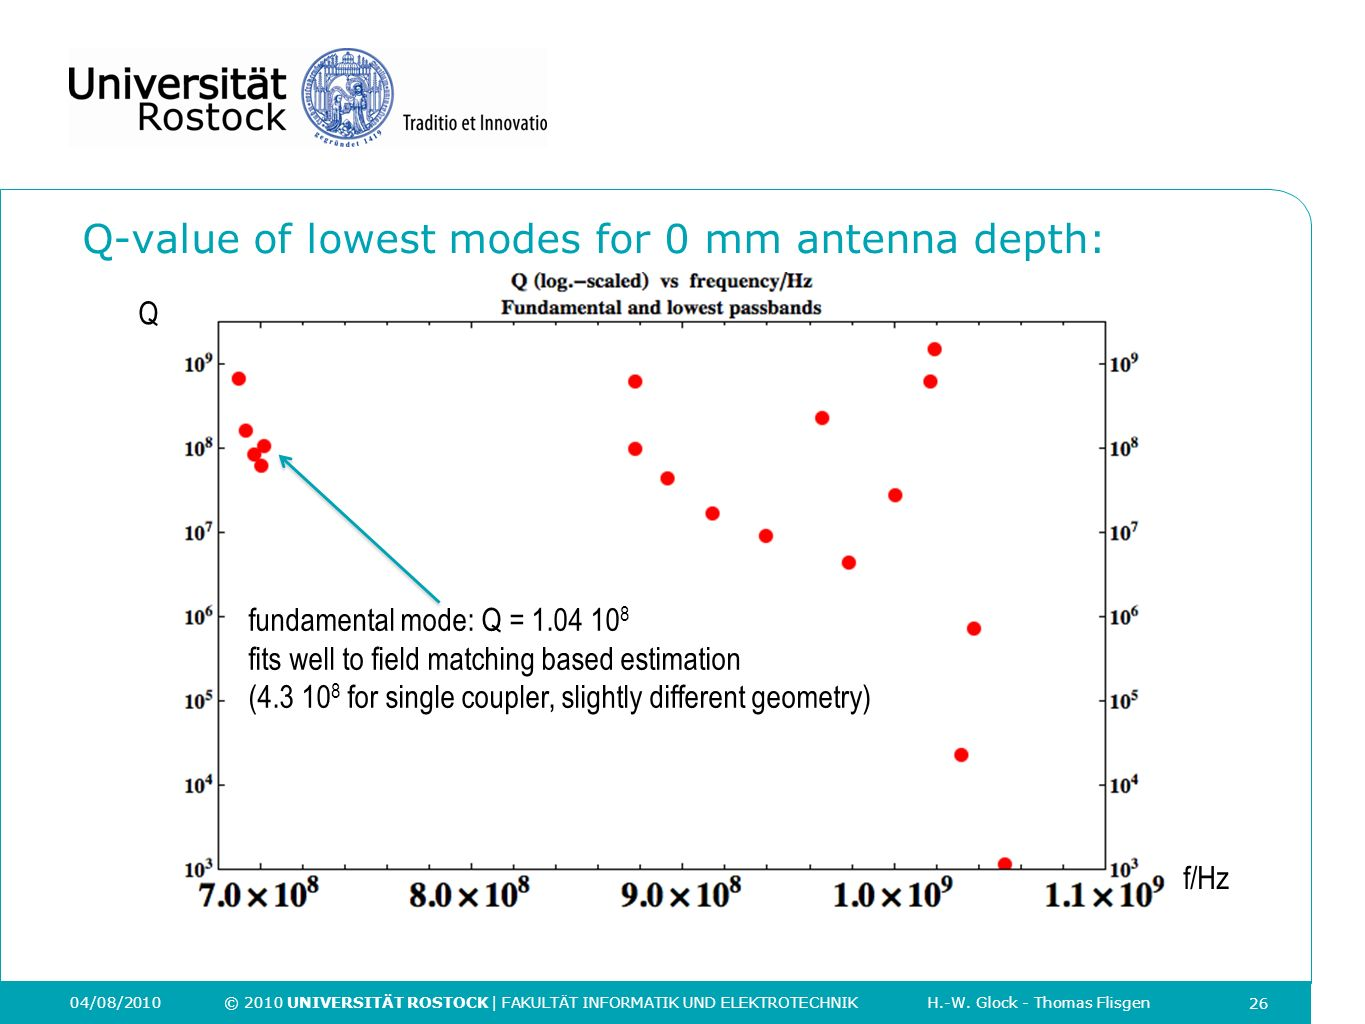 Q-value of lowest modes for 0 mm antenna depth: